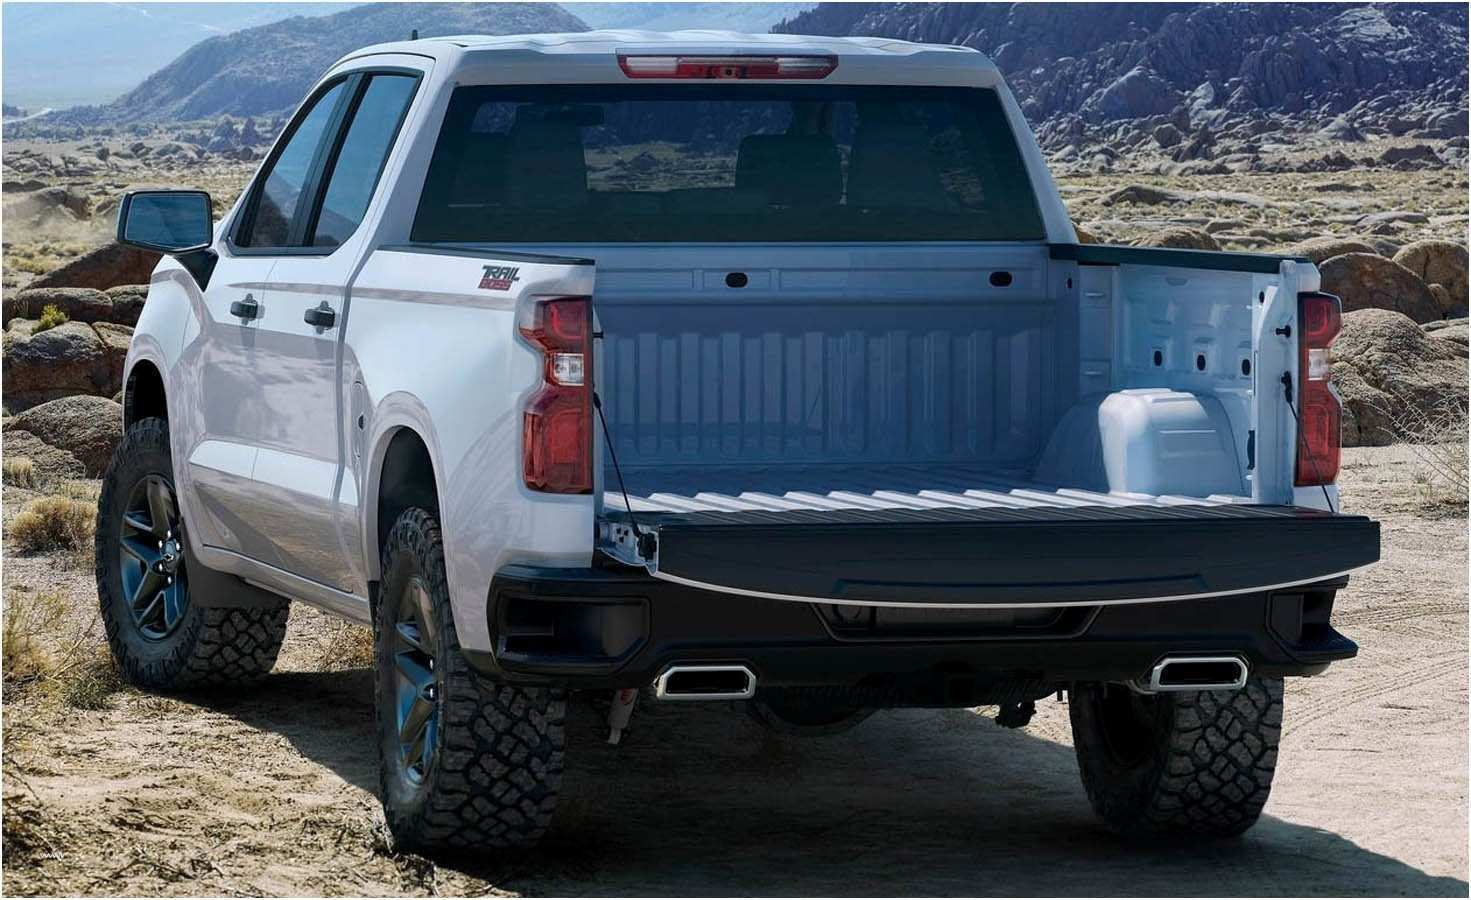 76 A 2019 Chevy Reaper History